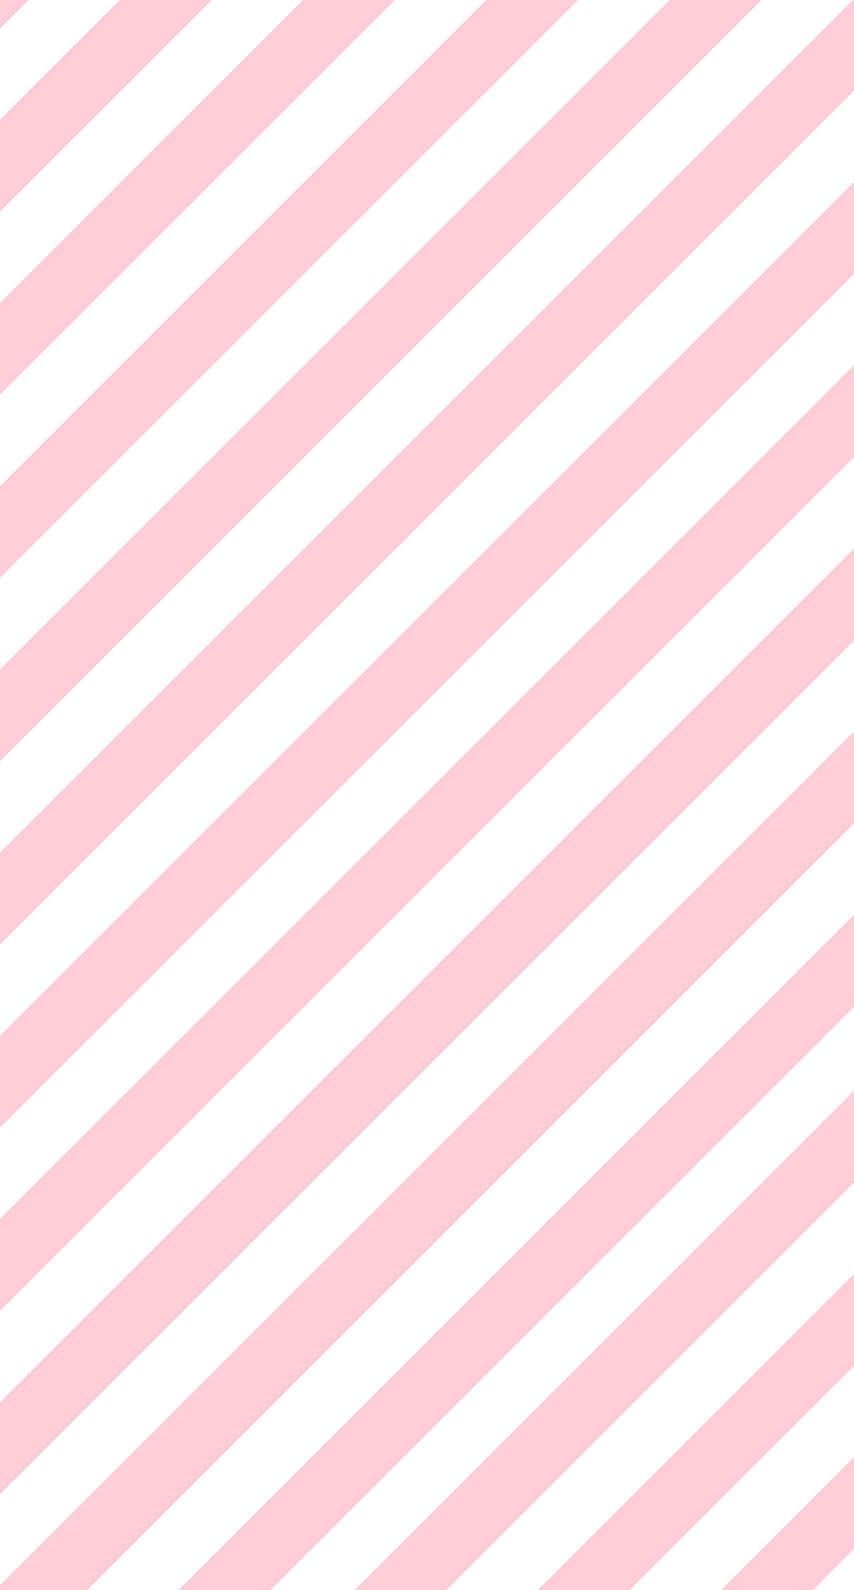 Pinkstripes Preppy Wallpaper Cool Iphone 6 Wallpapers Iphone Background Wallpaper